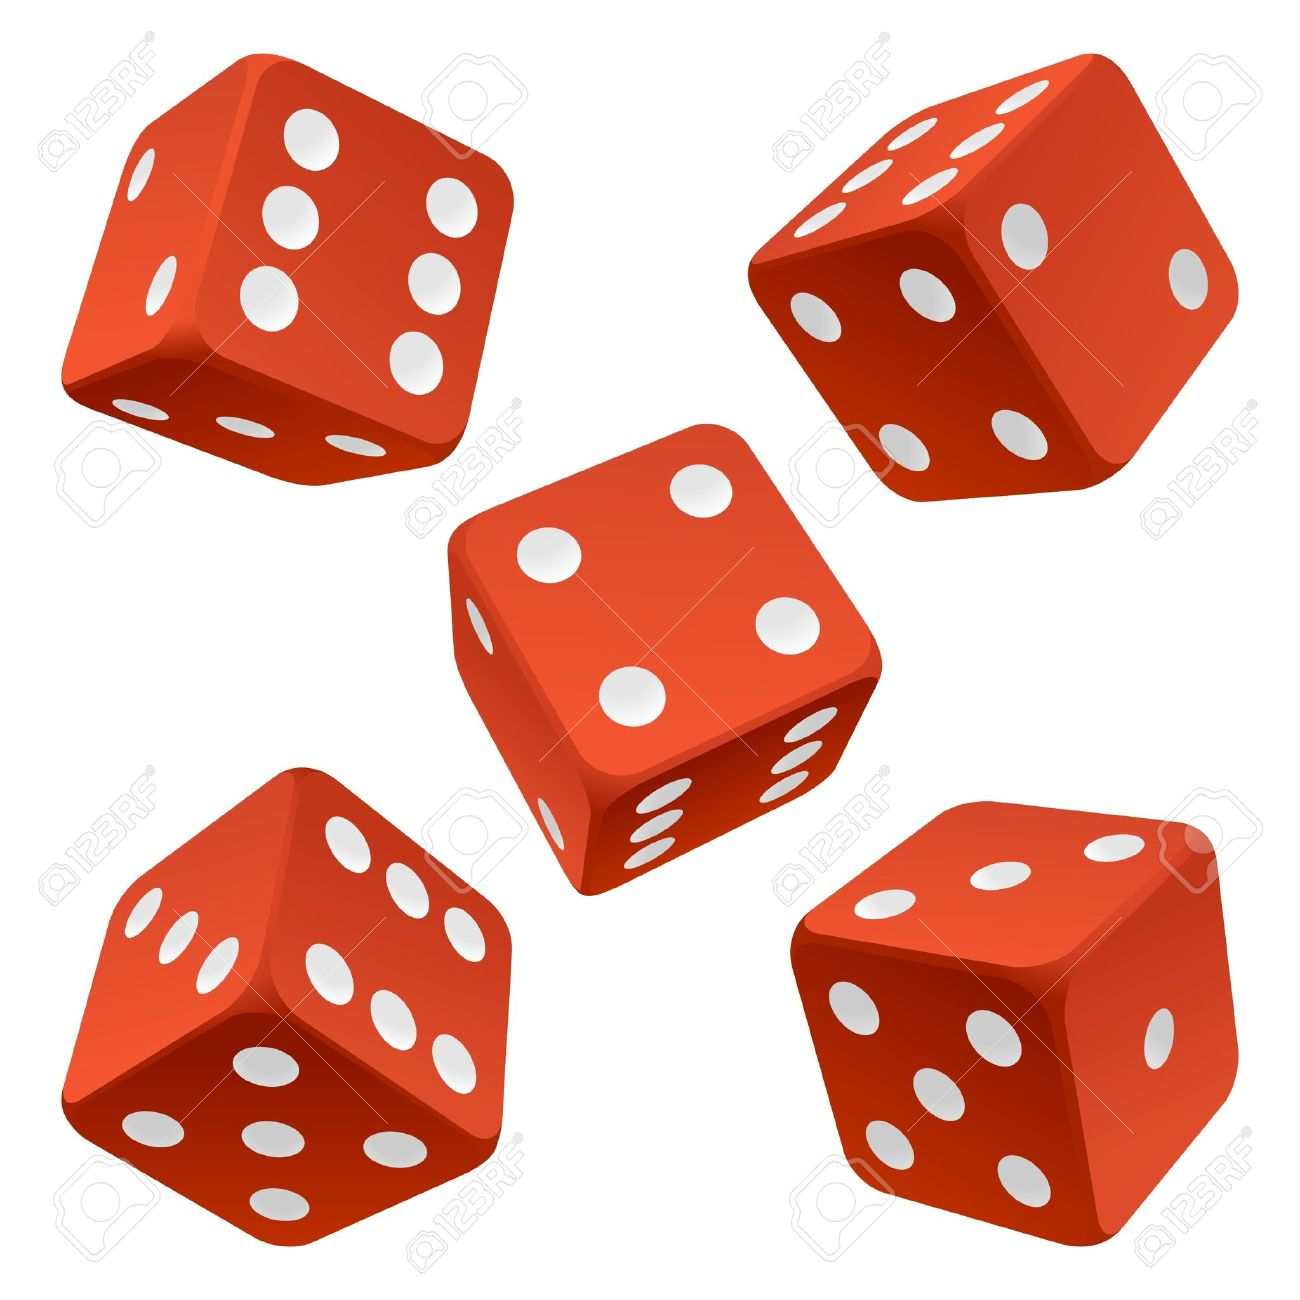 Rolling Dice Clipart | Free download on ClipArtMag